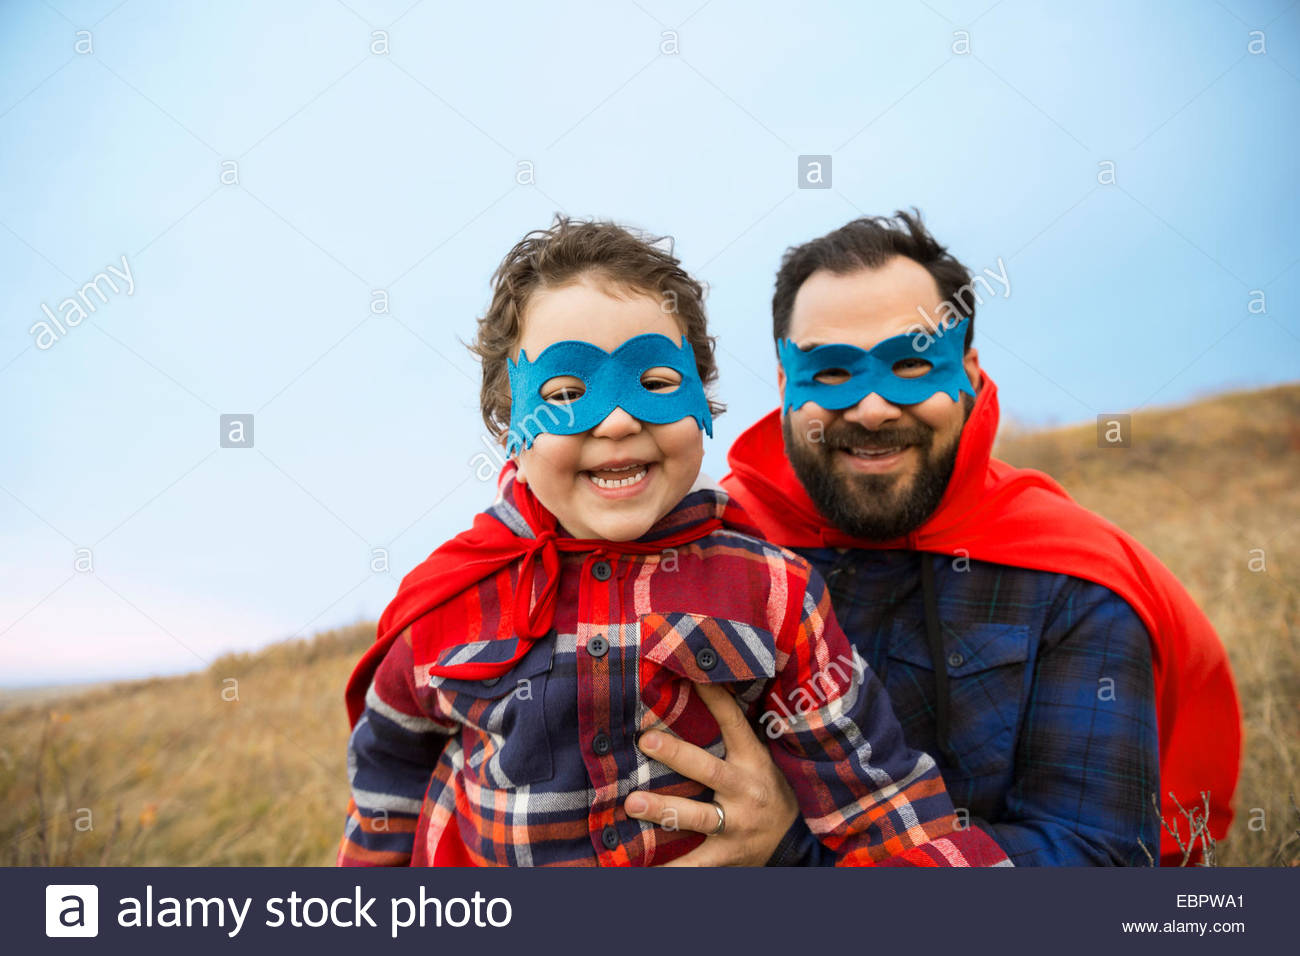 Portrait of father and son in superhero capes - Stock Image